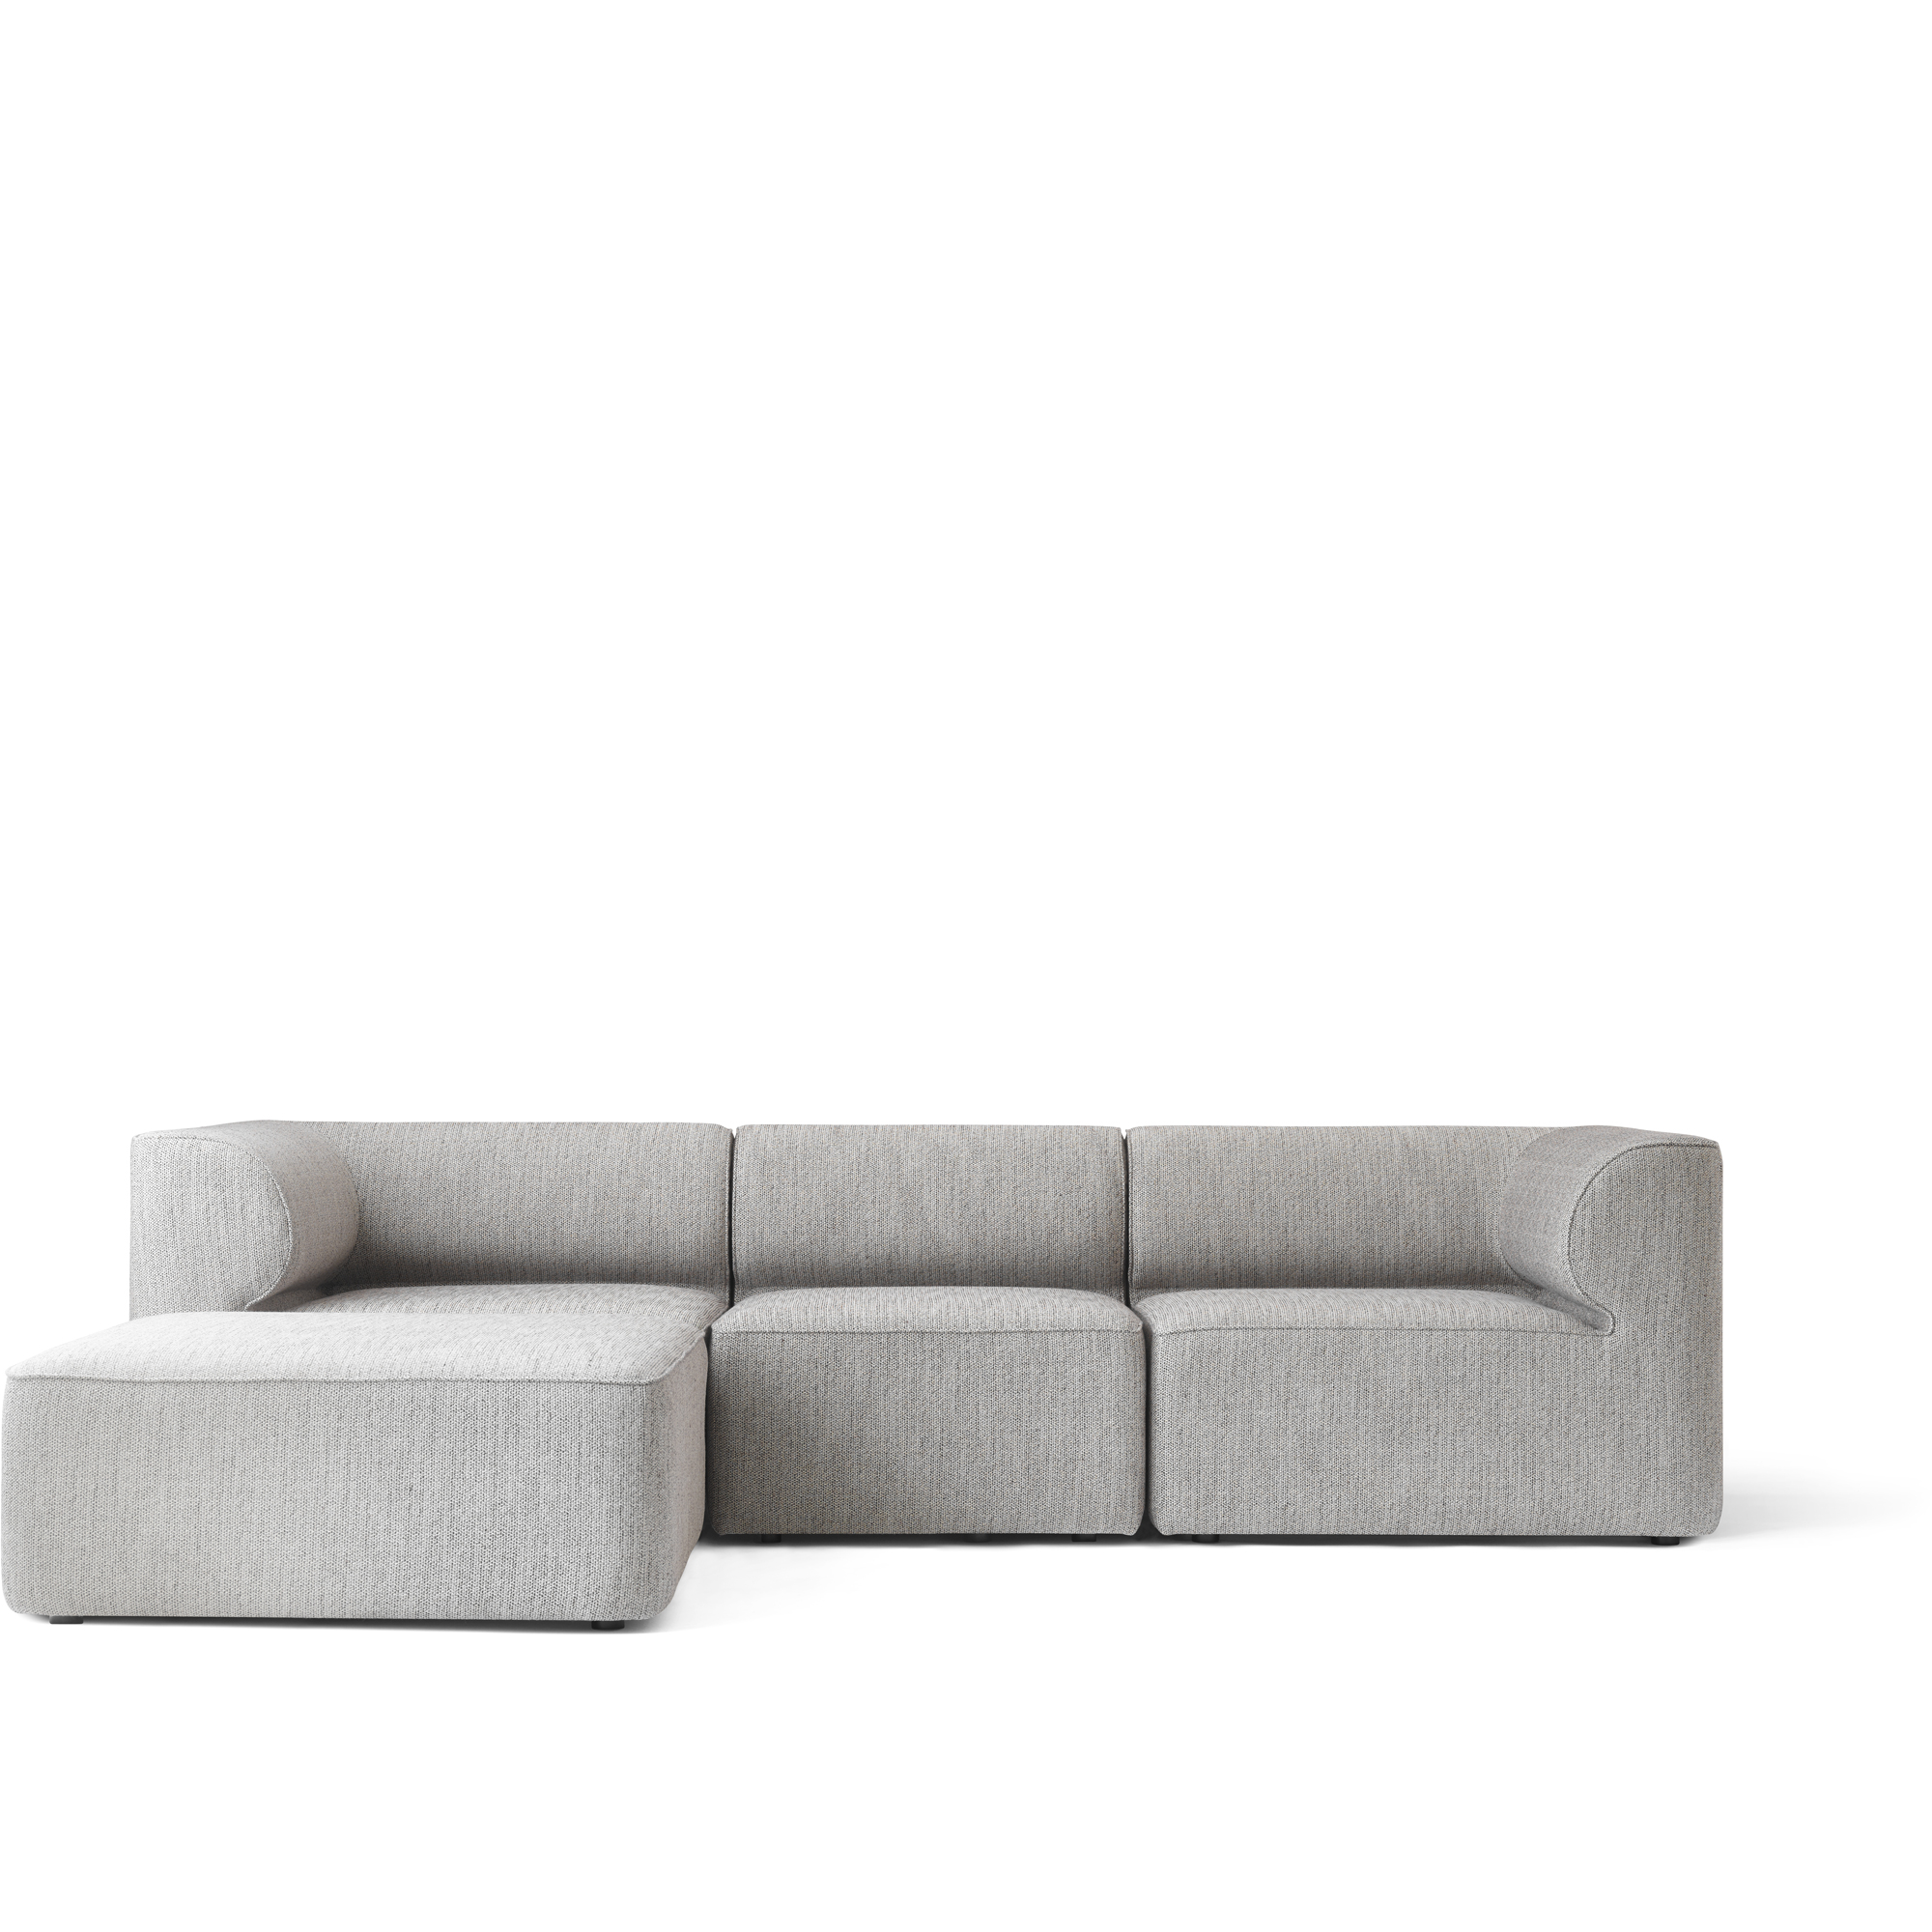 Zoom image Eave Modular Sofa Contemporary, MidCentury Modern, Upholstery  Fabric, Sofas Sectional by Horne